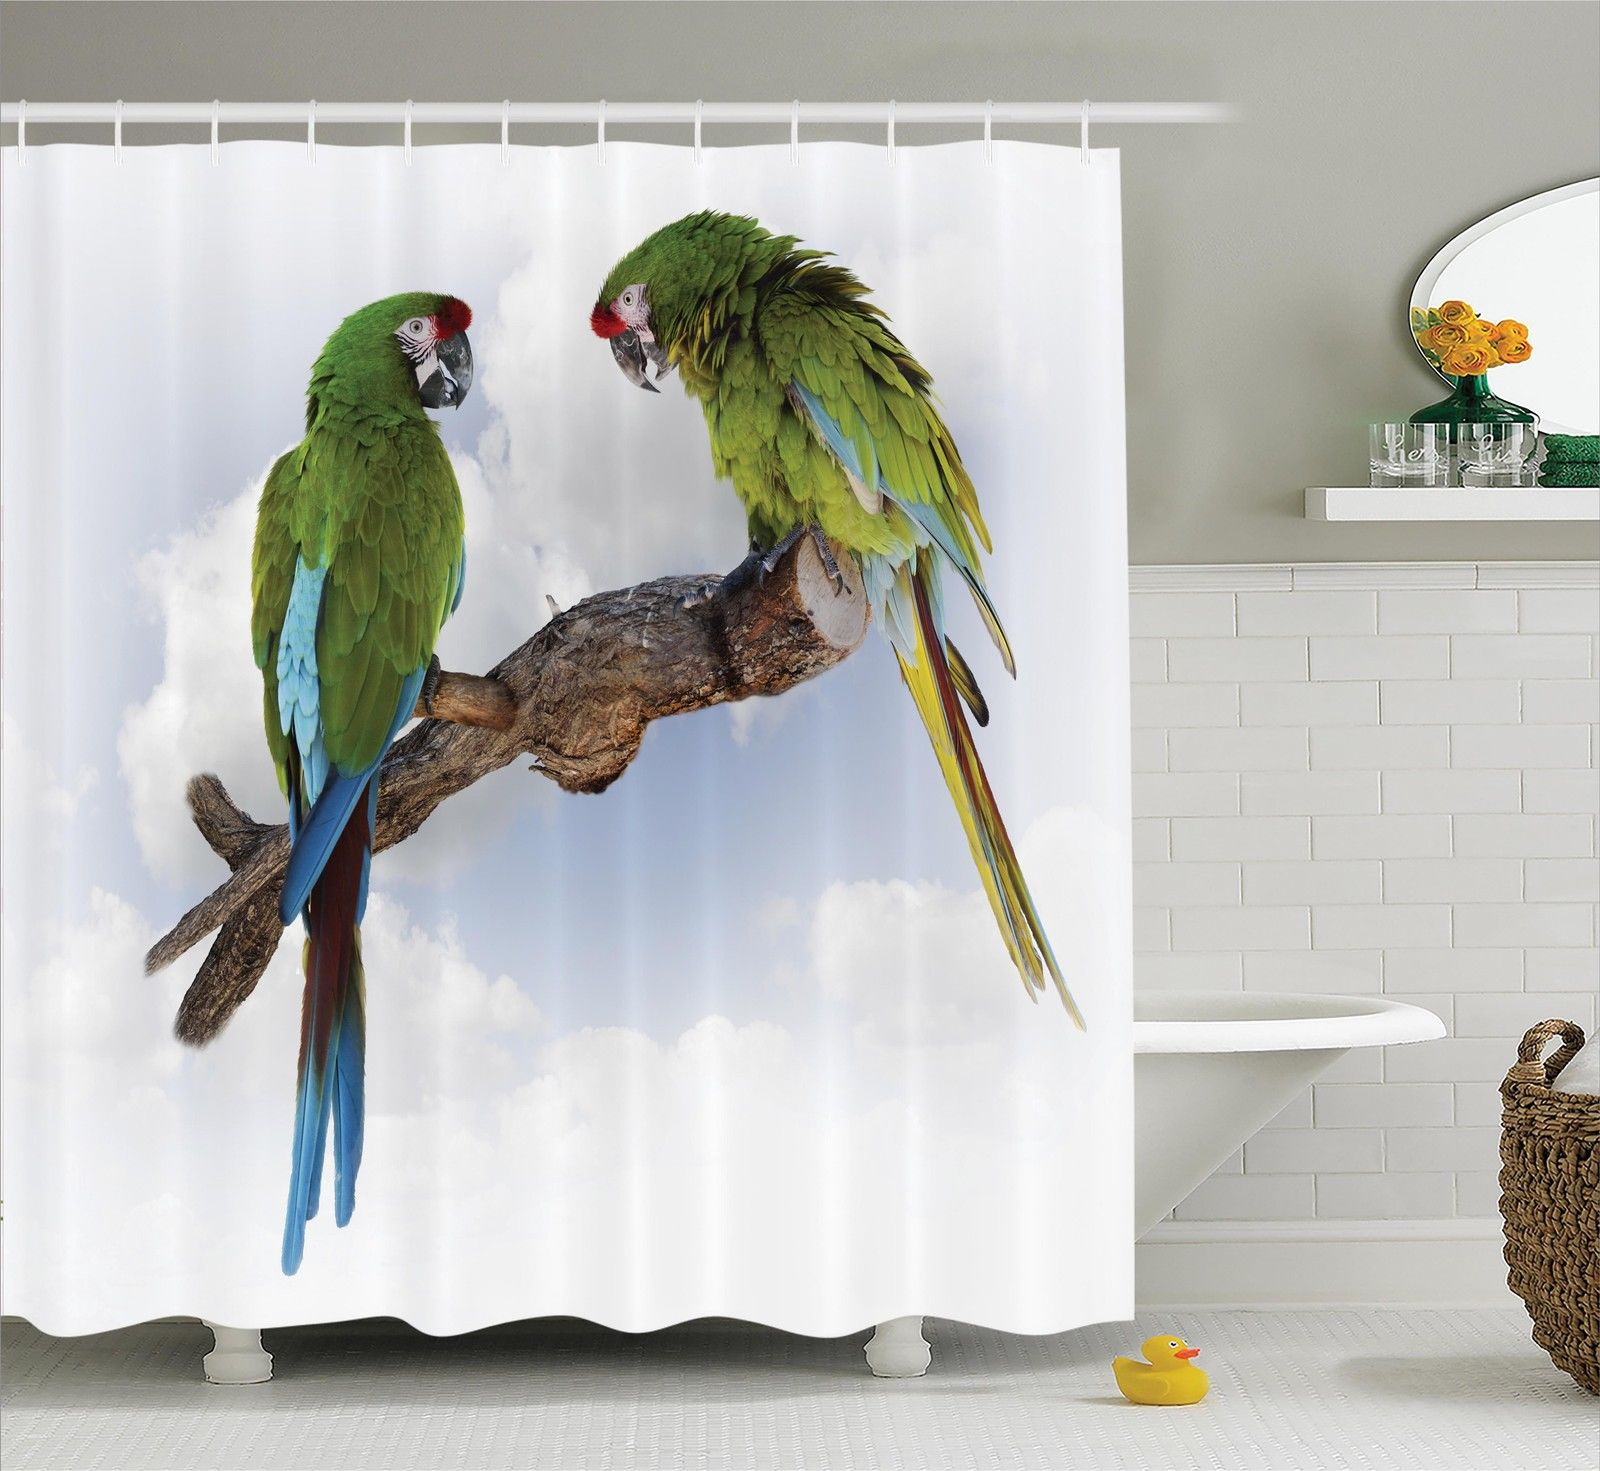 Parrots Decor  Two Parrot Macaw On A Branch Talking Birds...